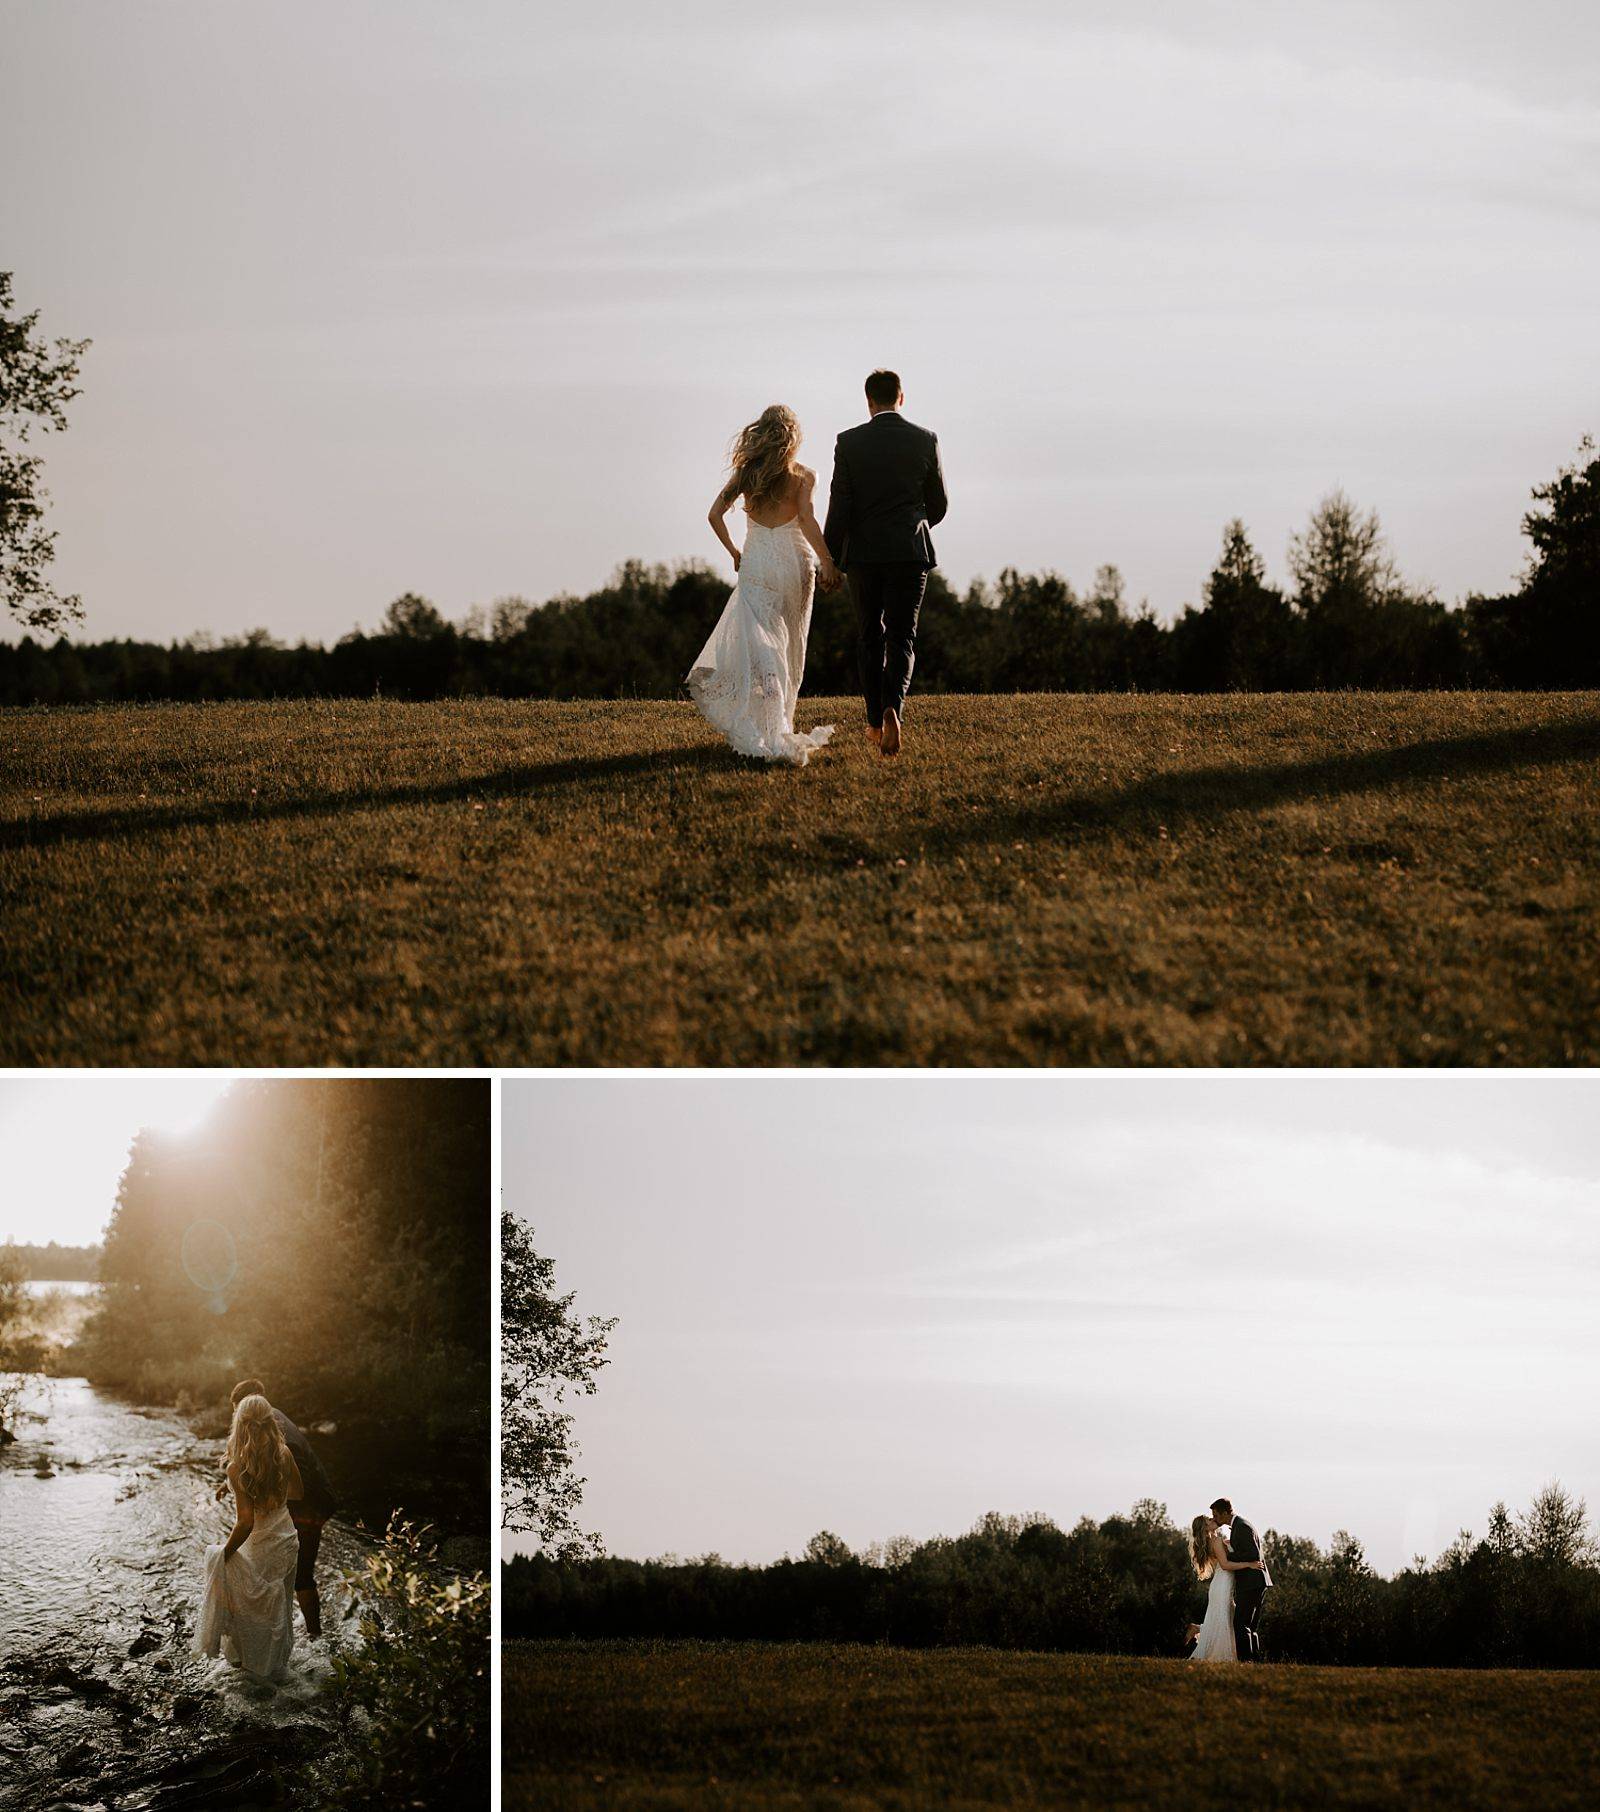 bride and groom have a unique wedding on grandfather's property during sunset